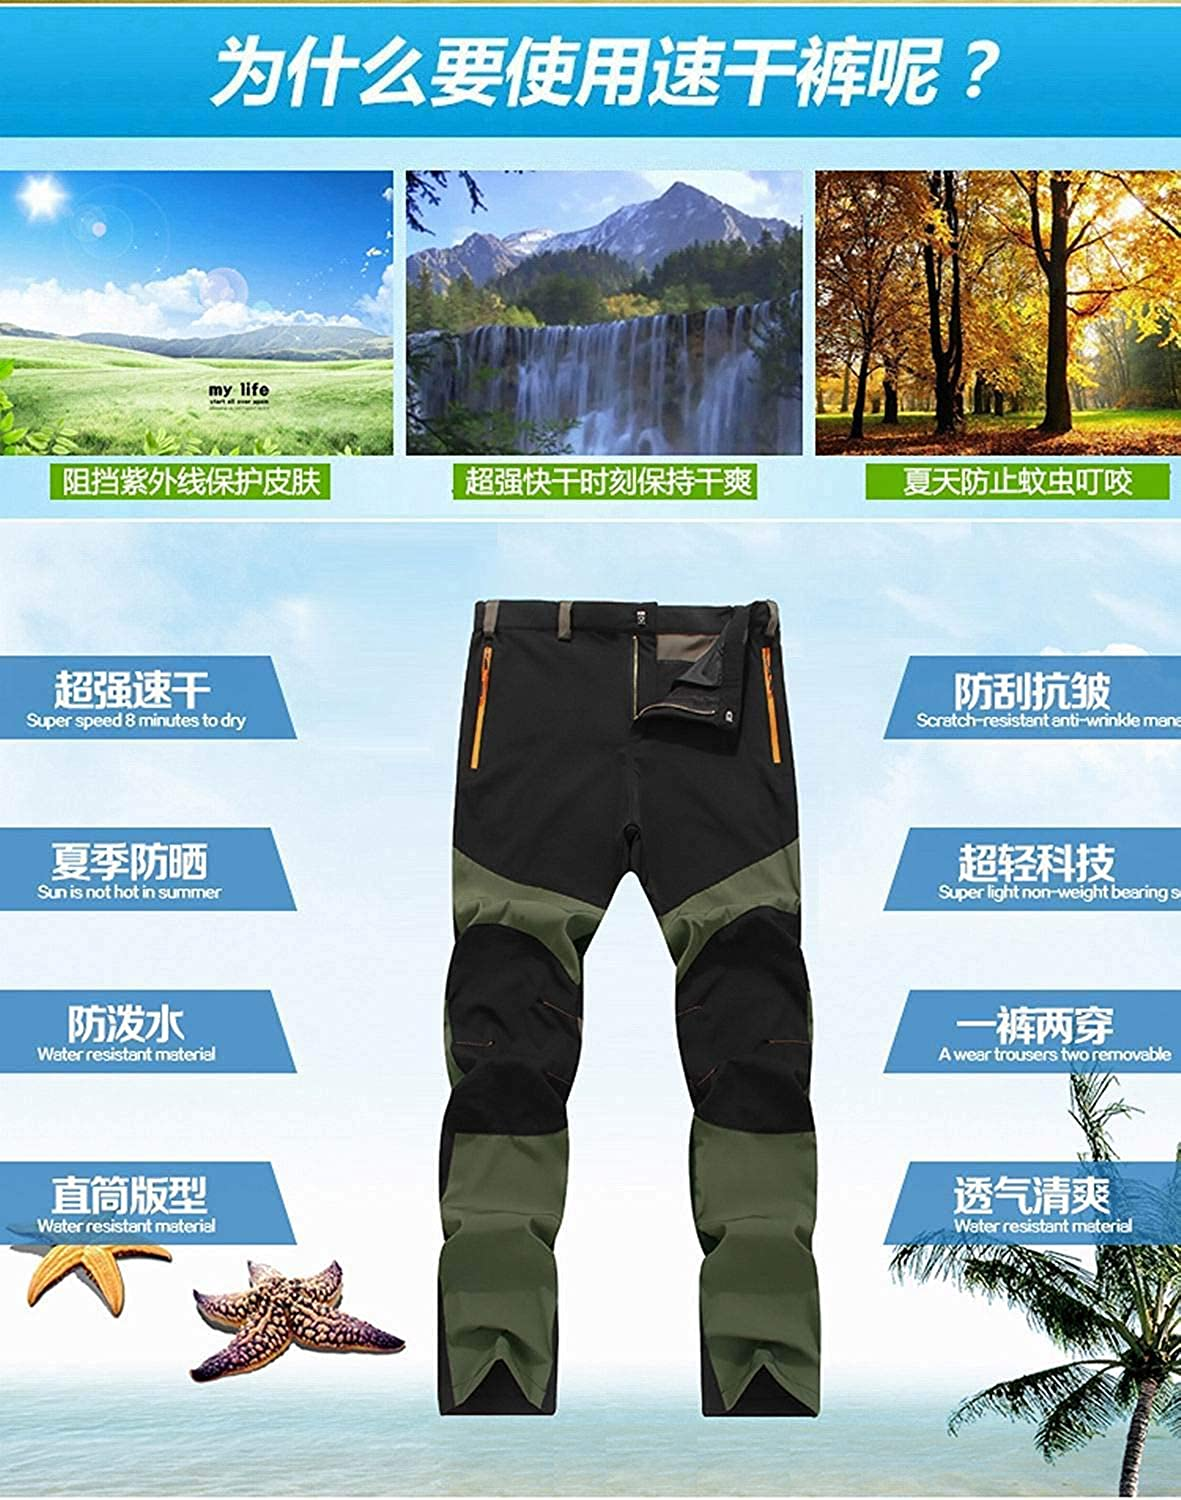 SUNNY Store Outdoor Light Weight Quick Dry Waterproof Breathable Hiking Mountaineering